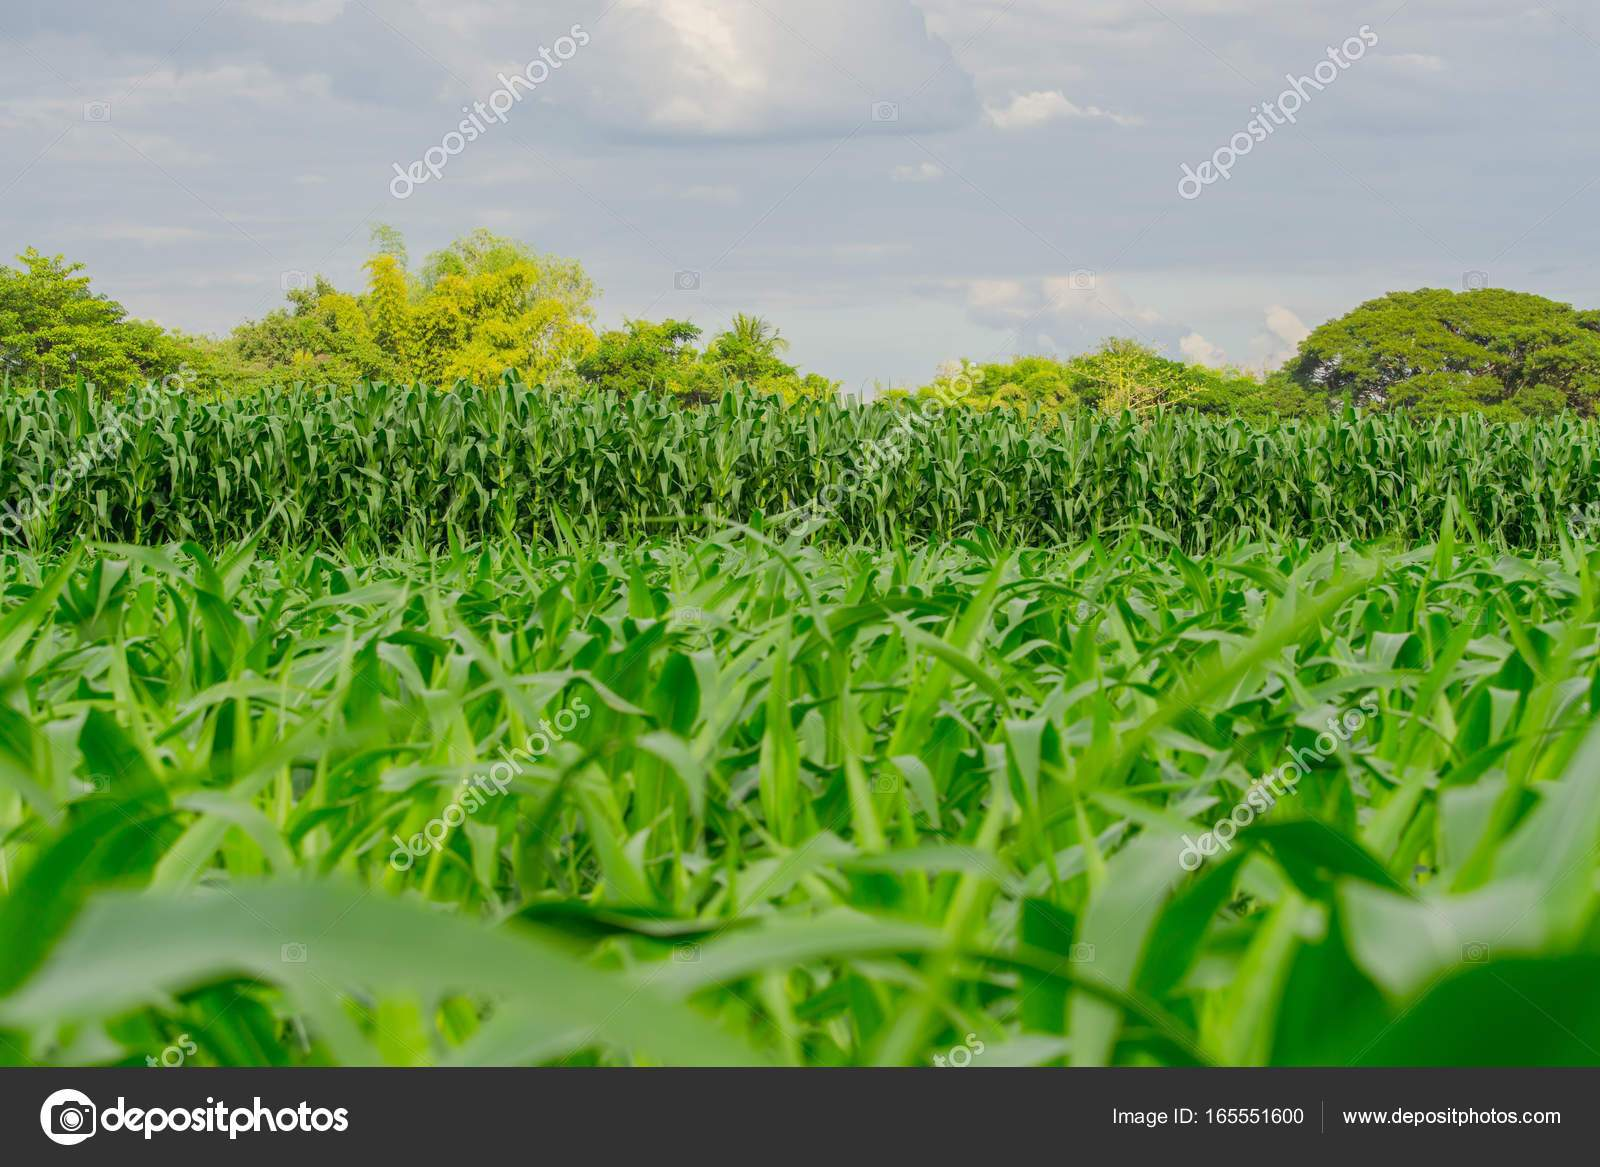 depositphotos stock photo green corn field in agricultural